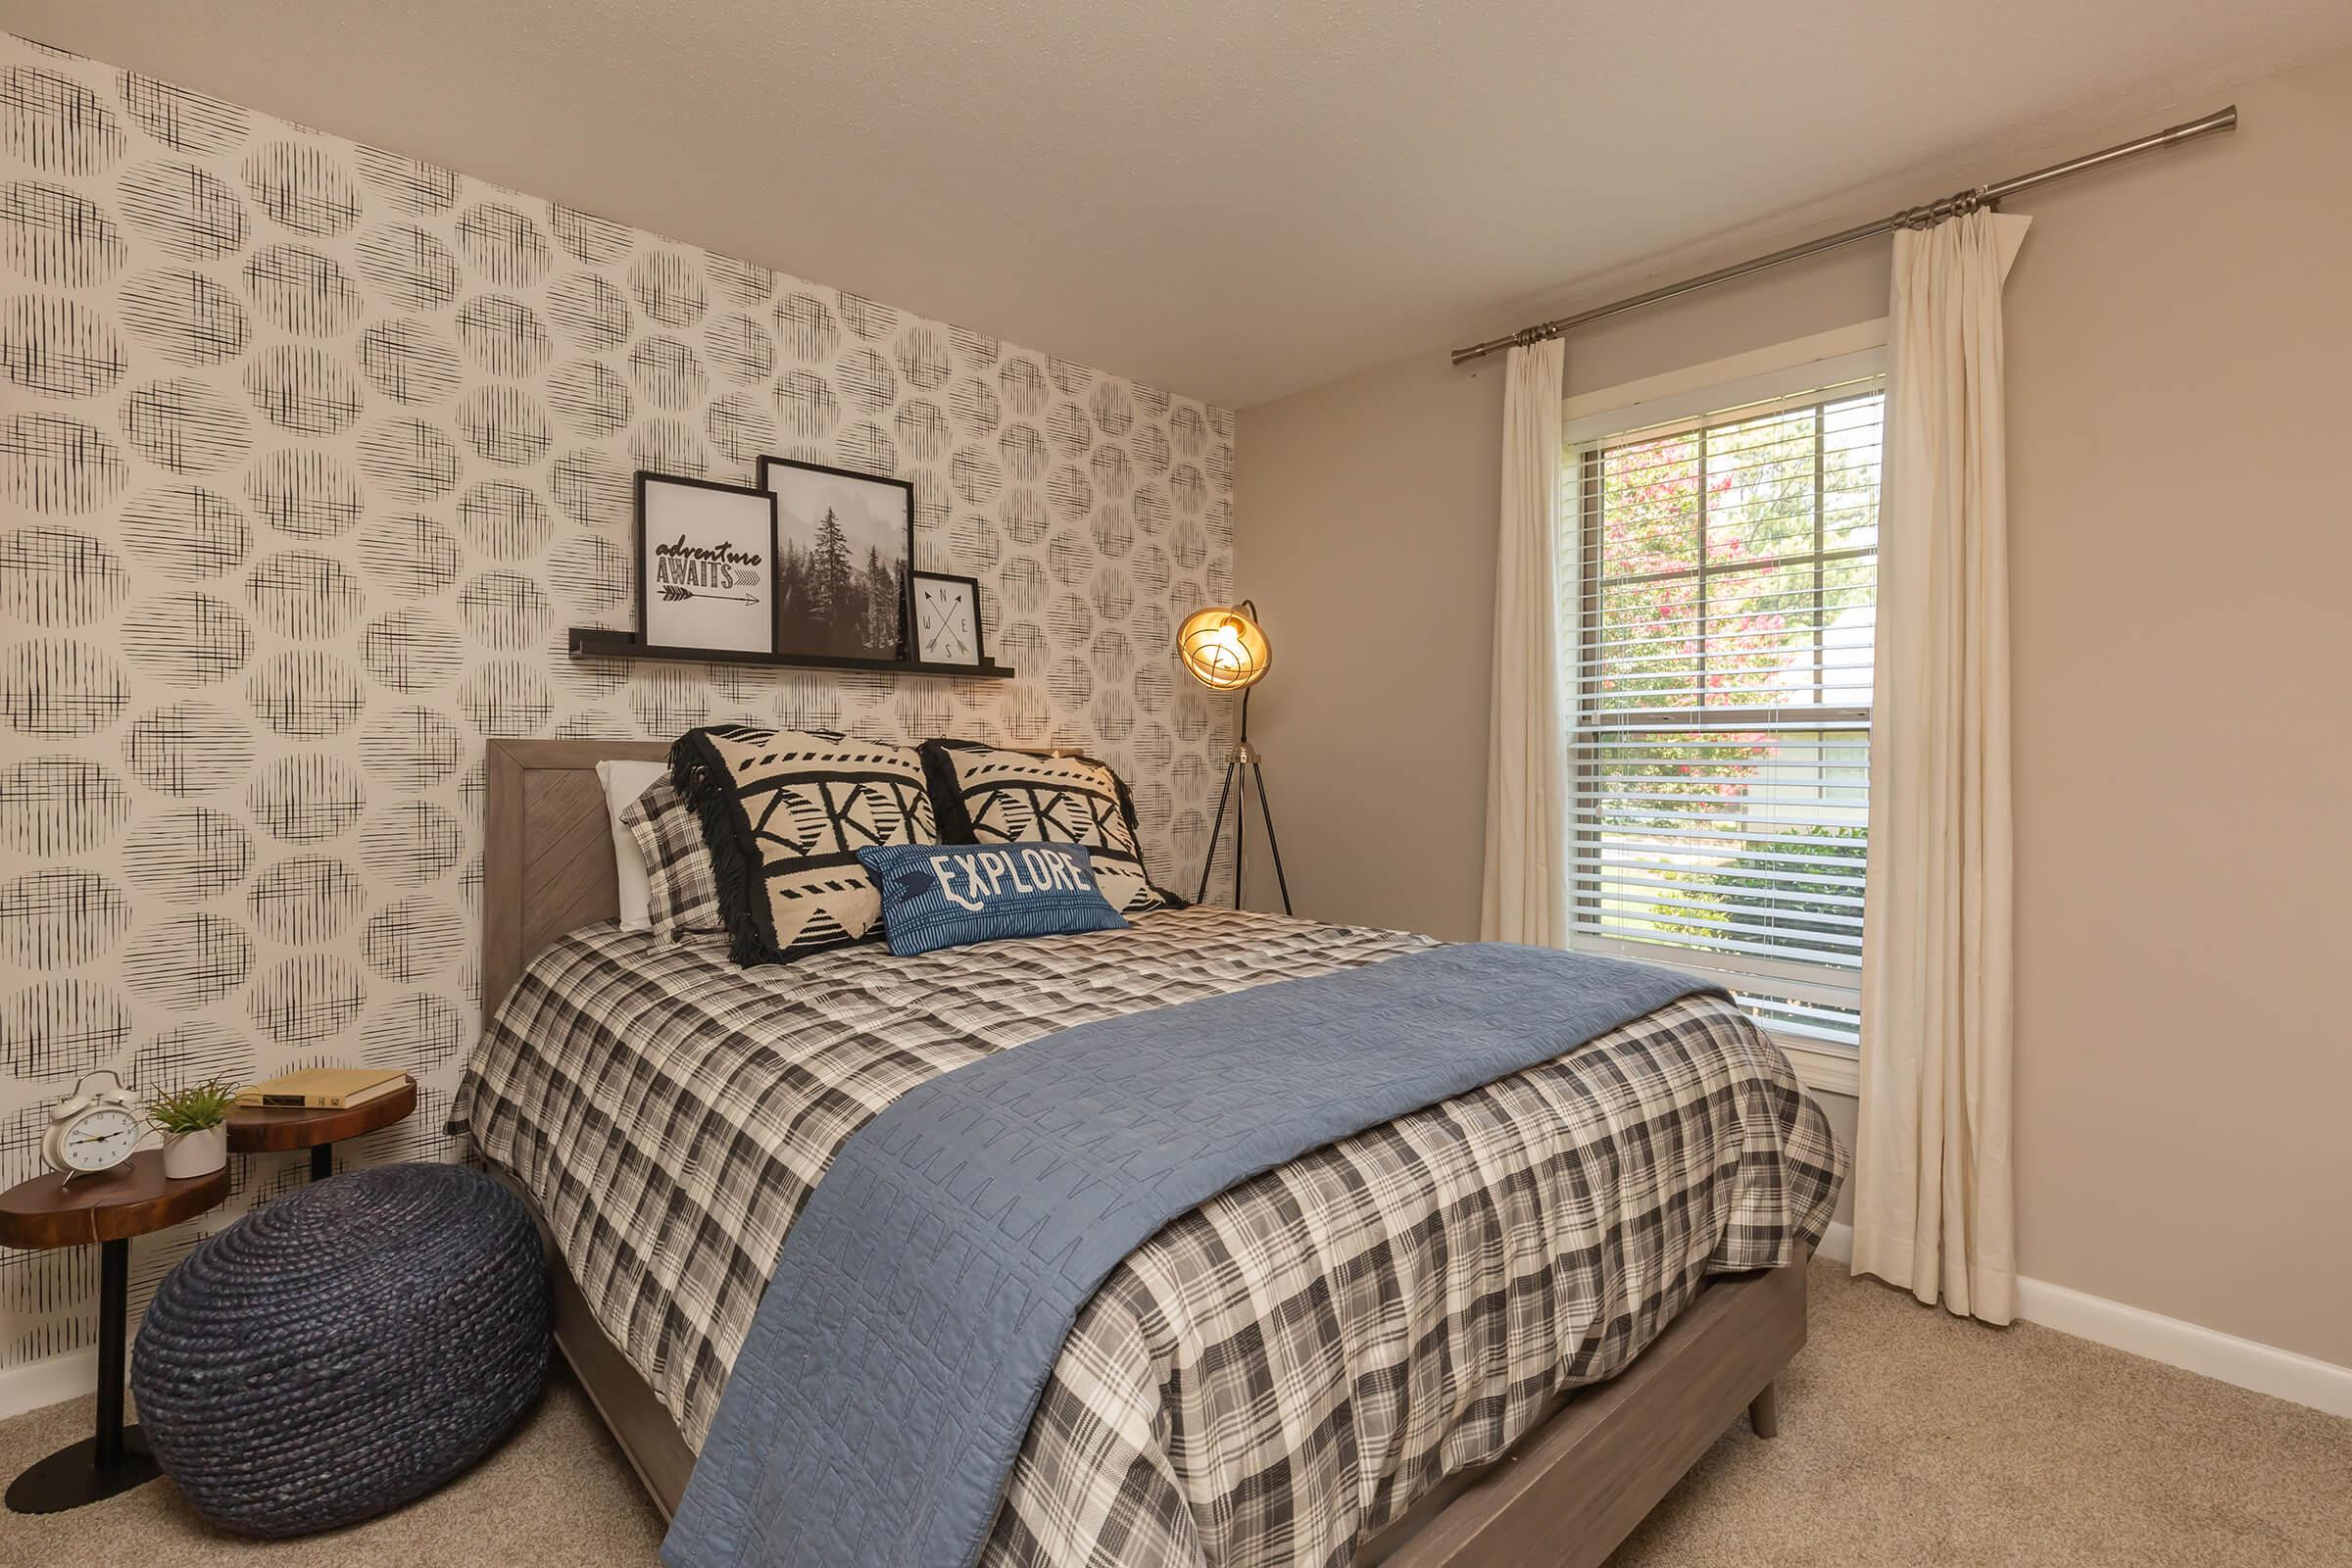 a bedroom with a large bed sitting in a room